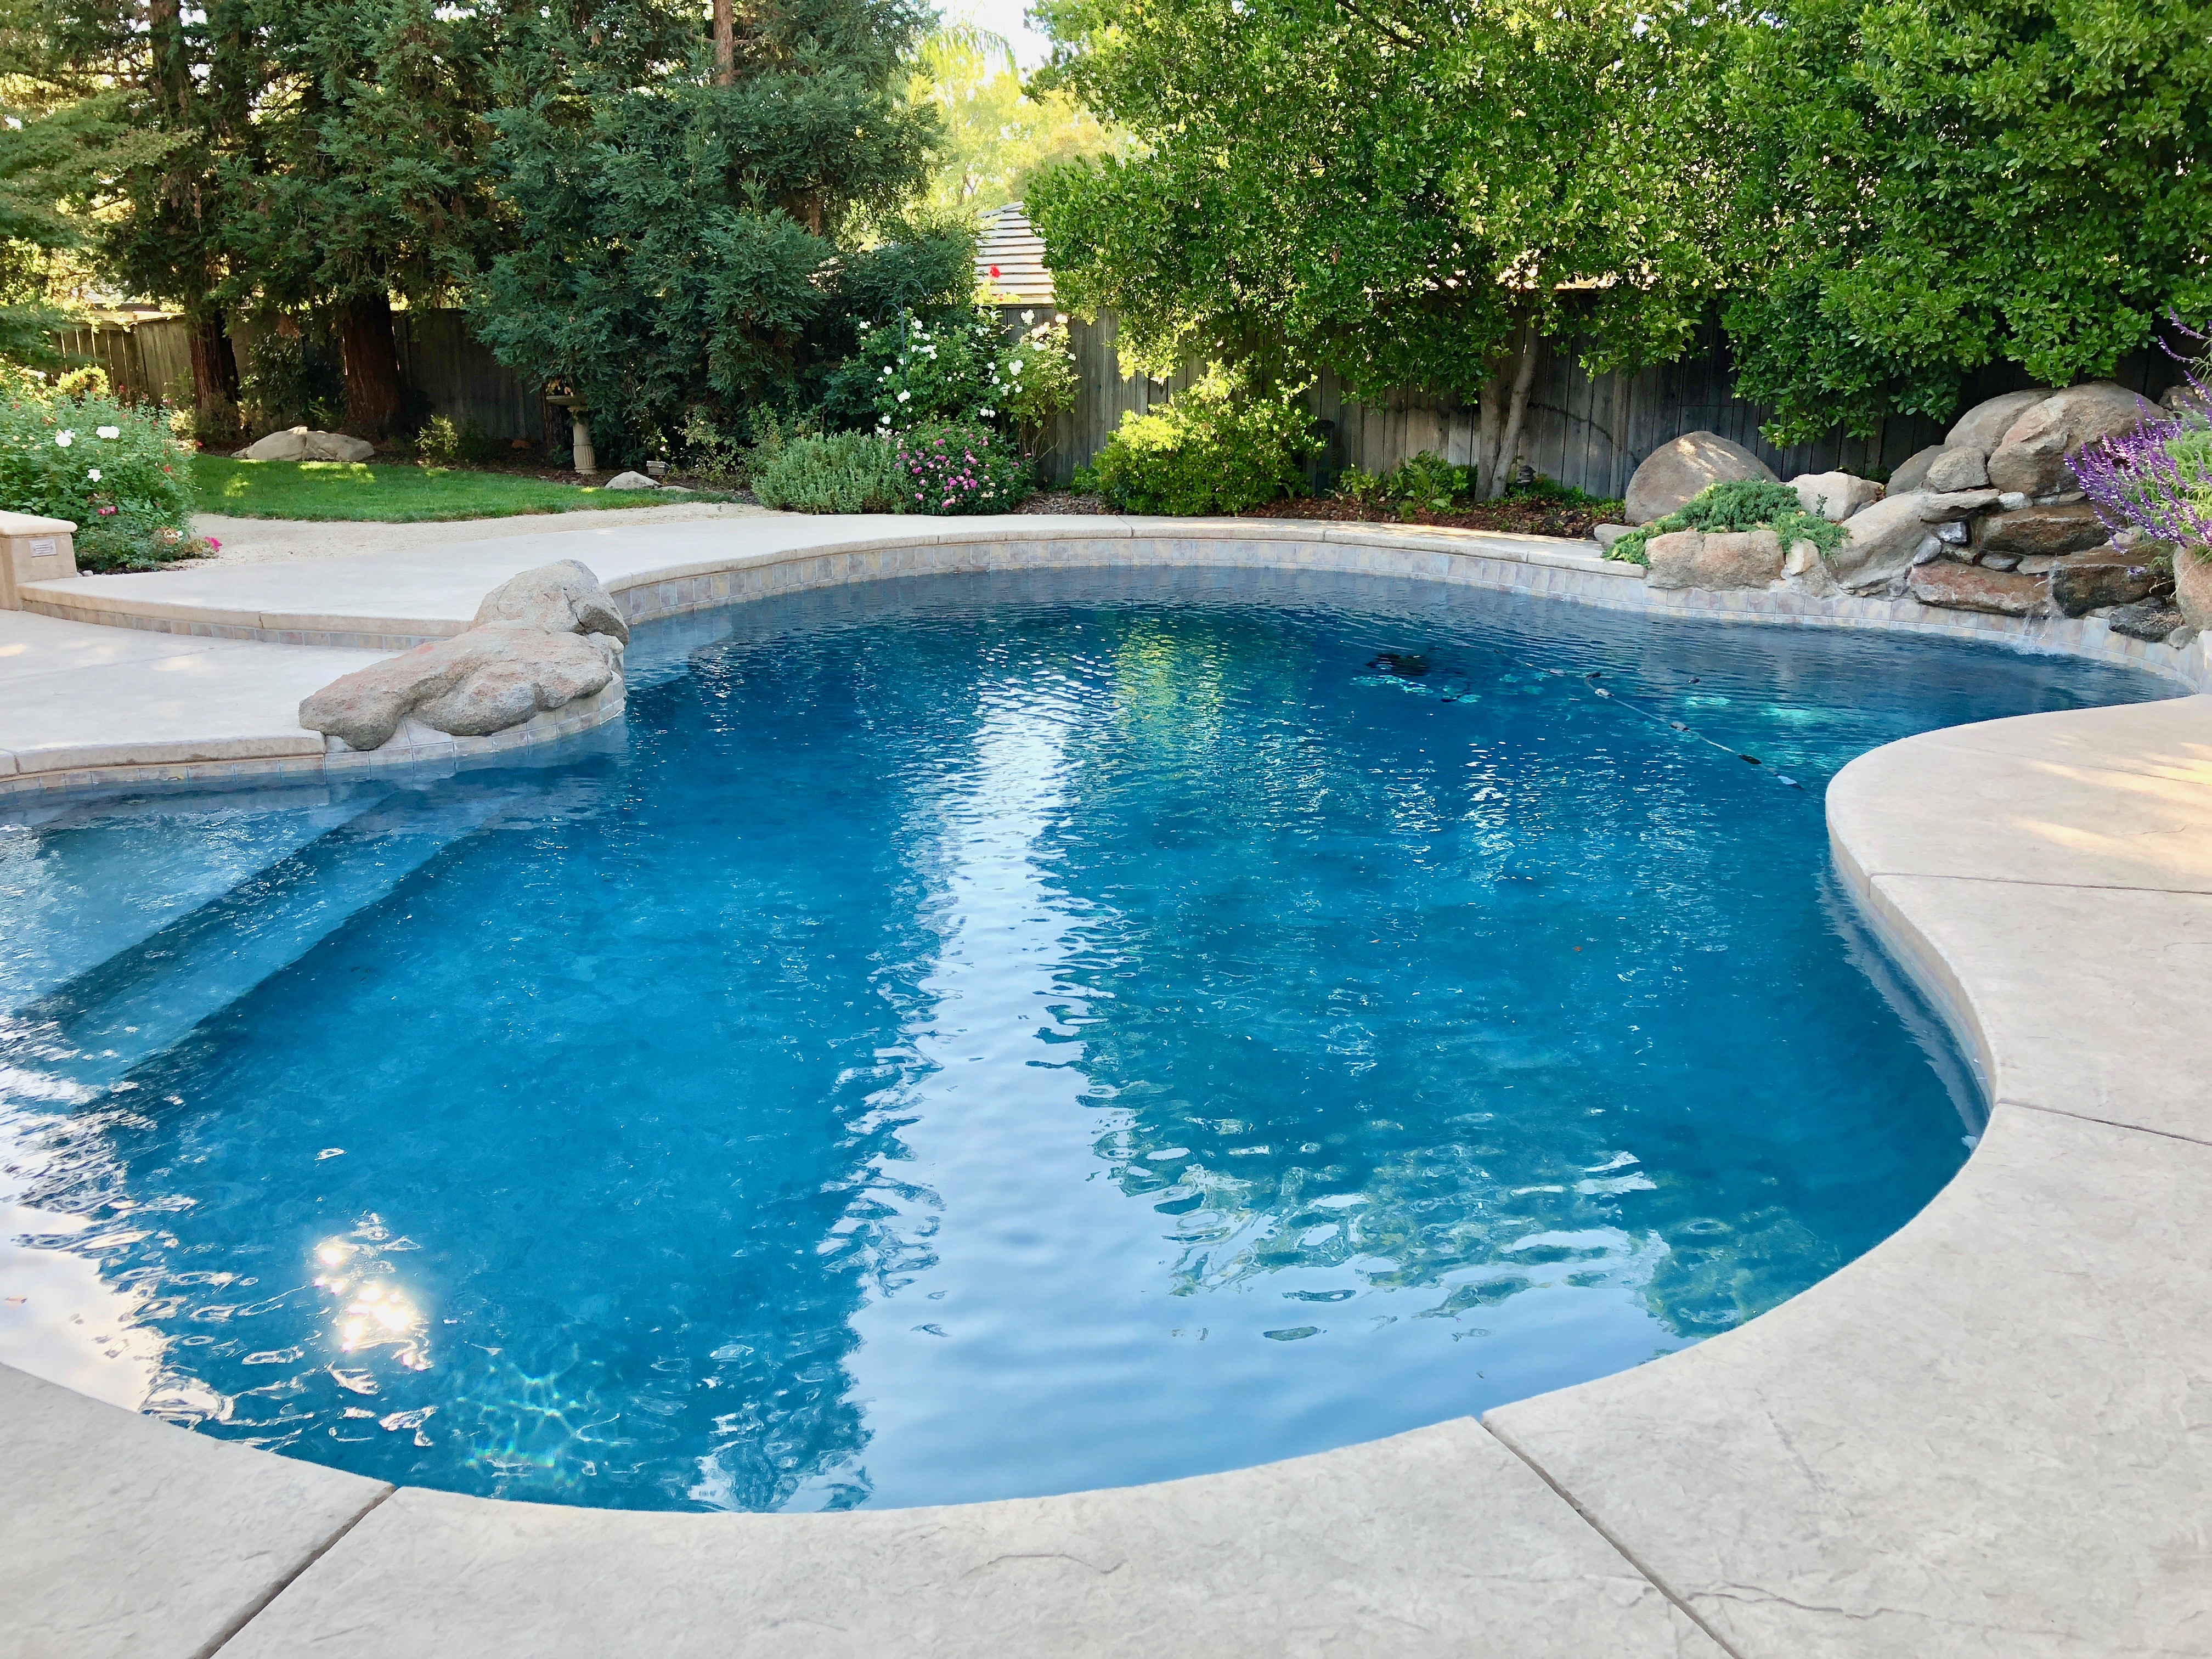 A Pool in the Backyard of a Home in Fresno, CA